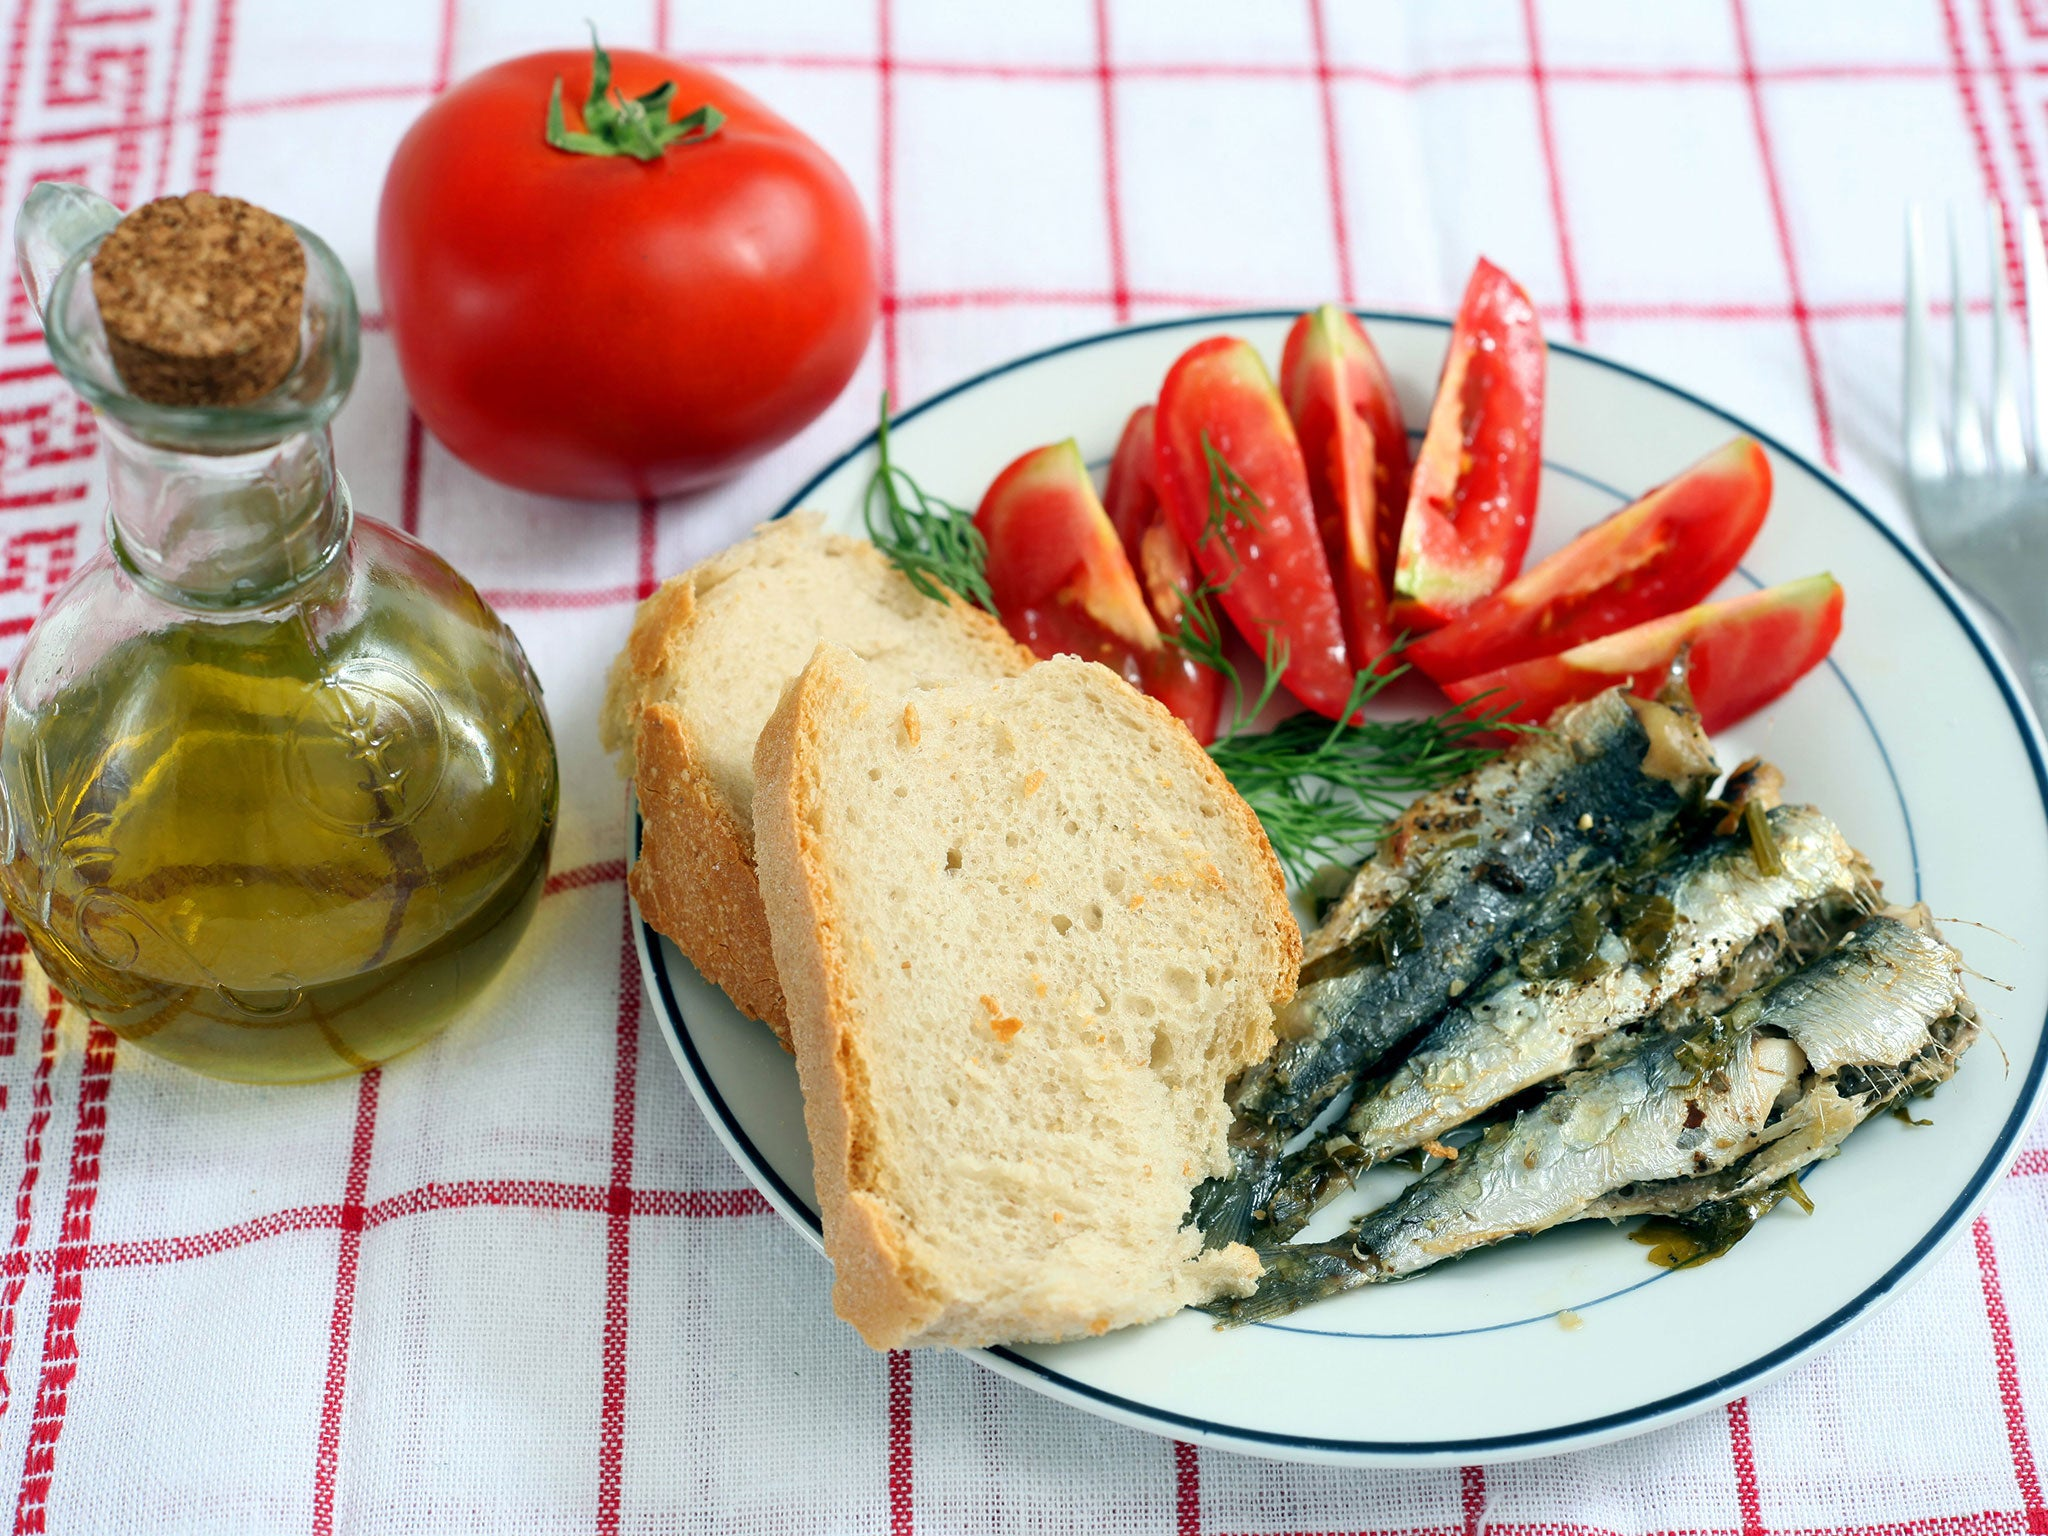 Eat a Mediterranean diet and stop counting calories to combat obesity, say doctors